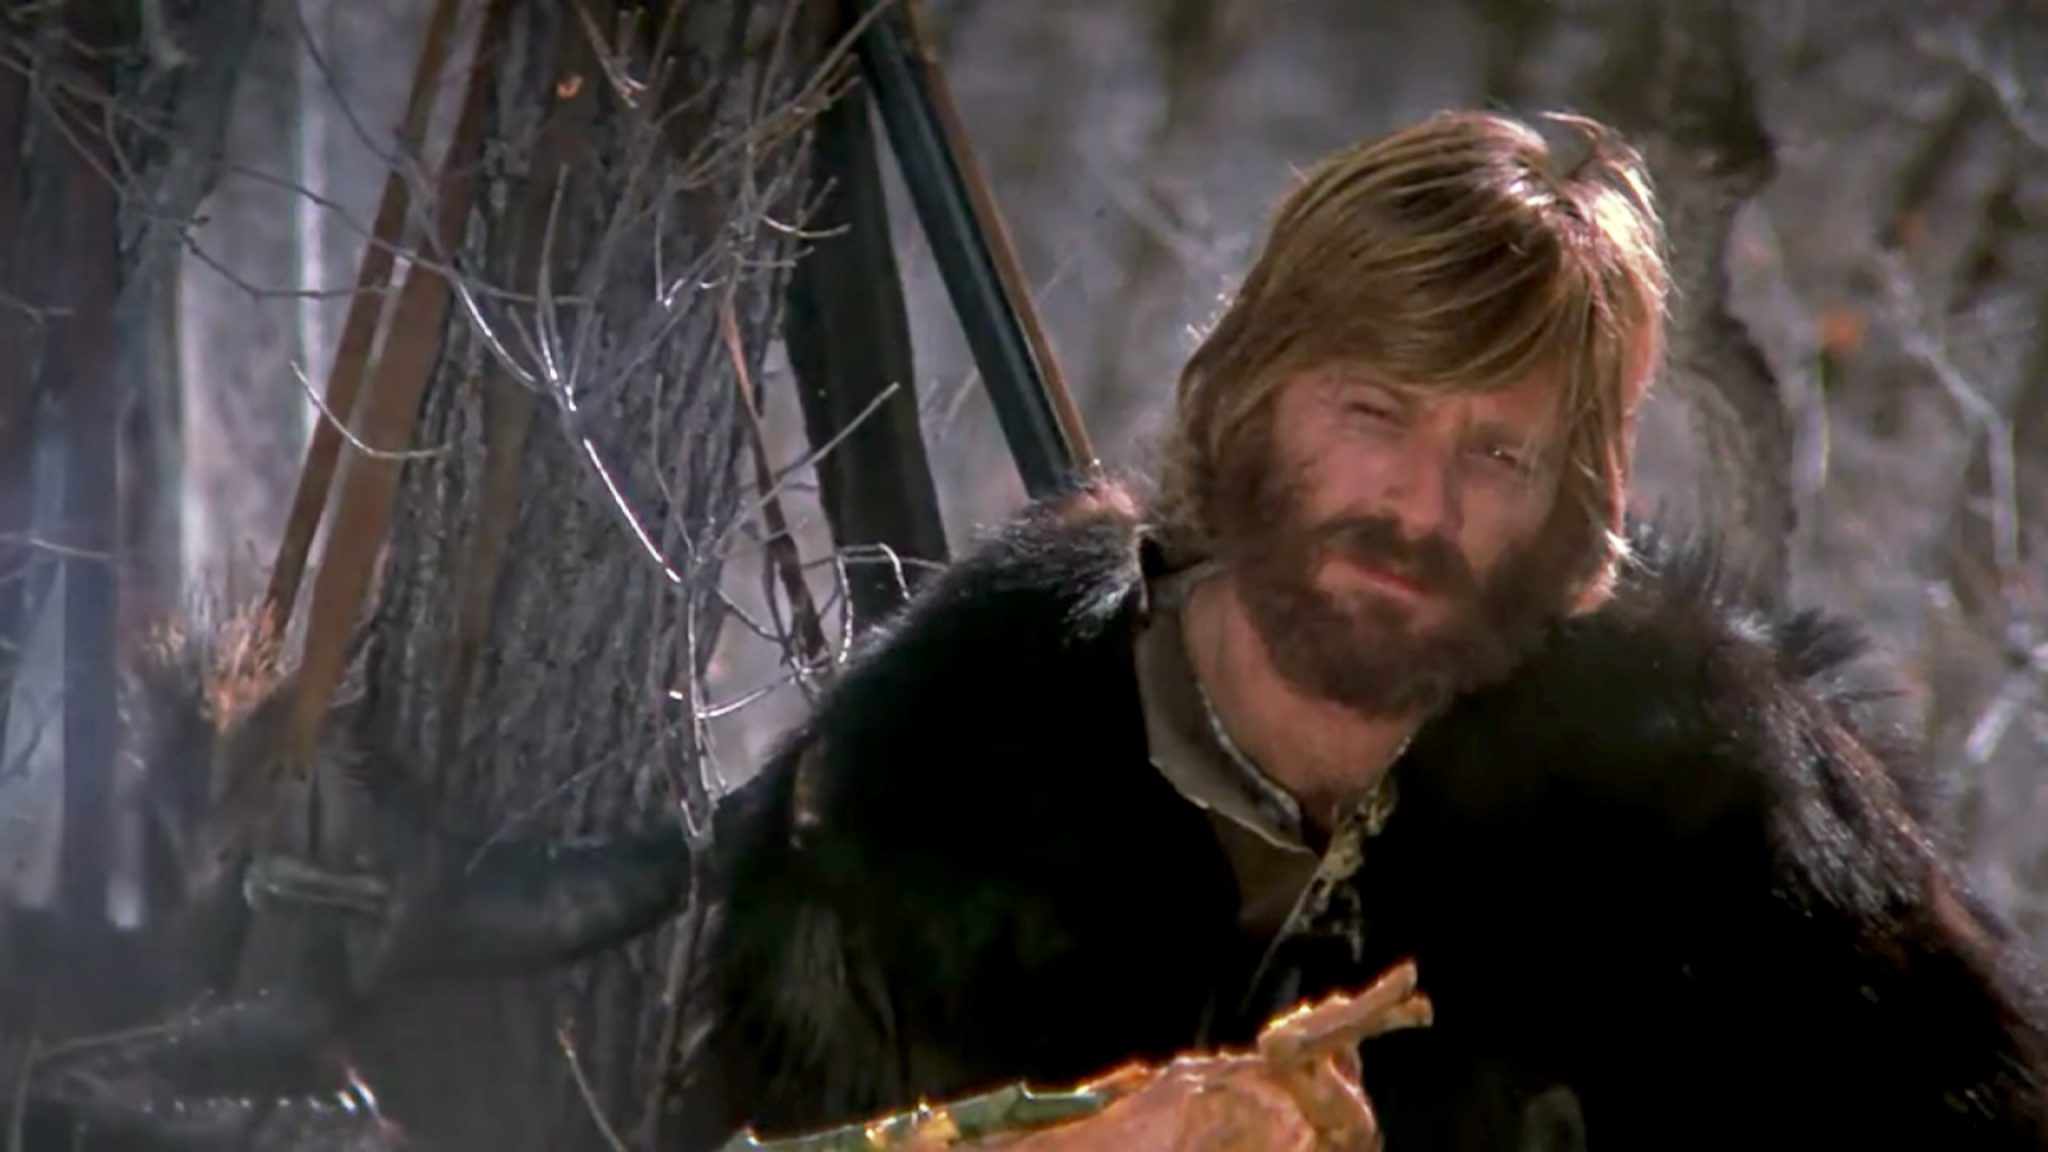 jeremiah johnson, mountain man, true story, john johnston,